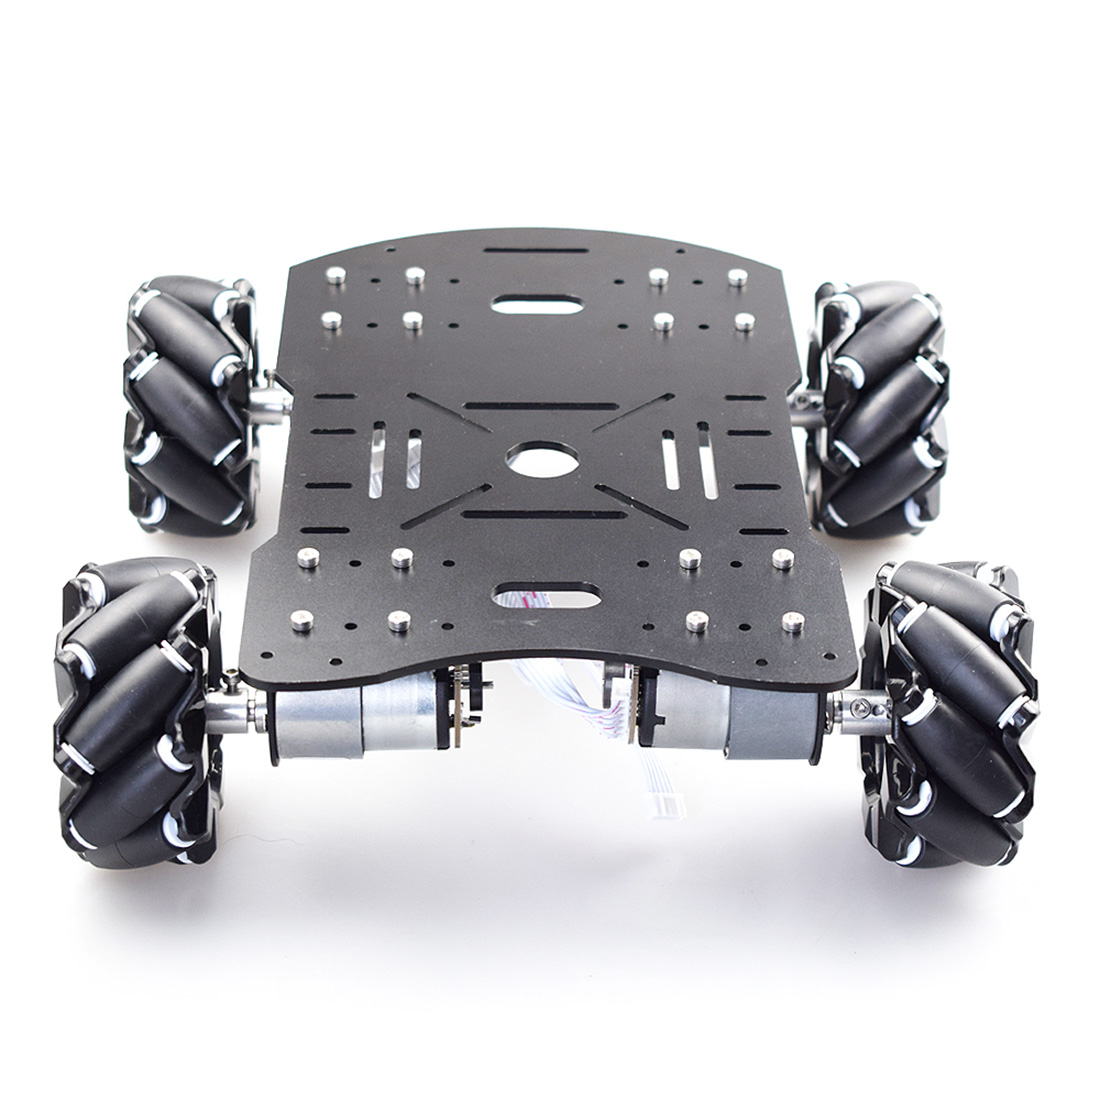 80mm Mecanum Acrylic Platform Omni-Directional Mecanum Wheel Robot Car With Arduino Electronic Control (Without Power Supply)